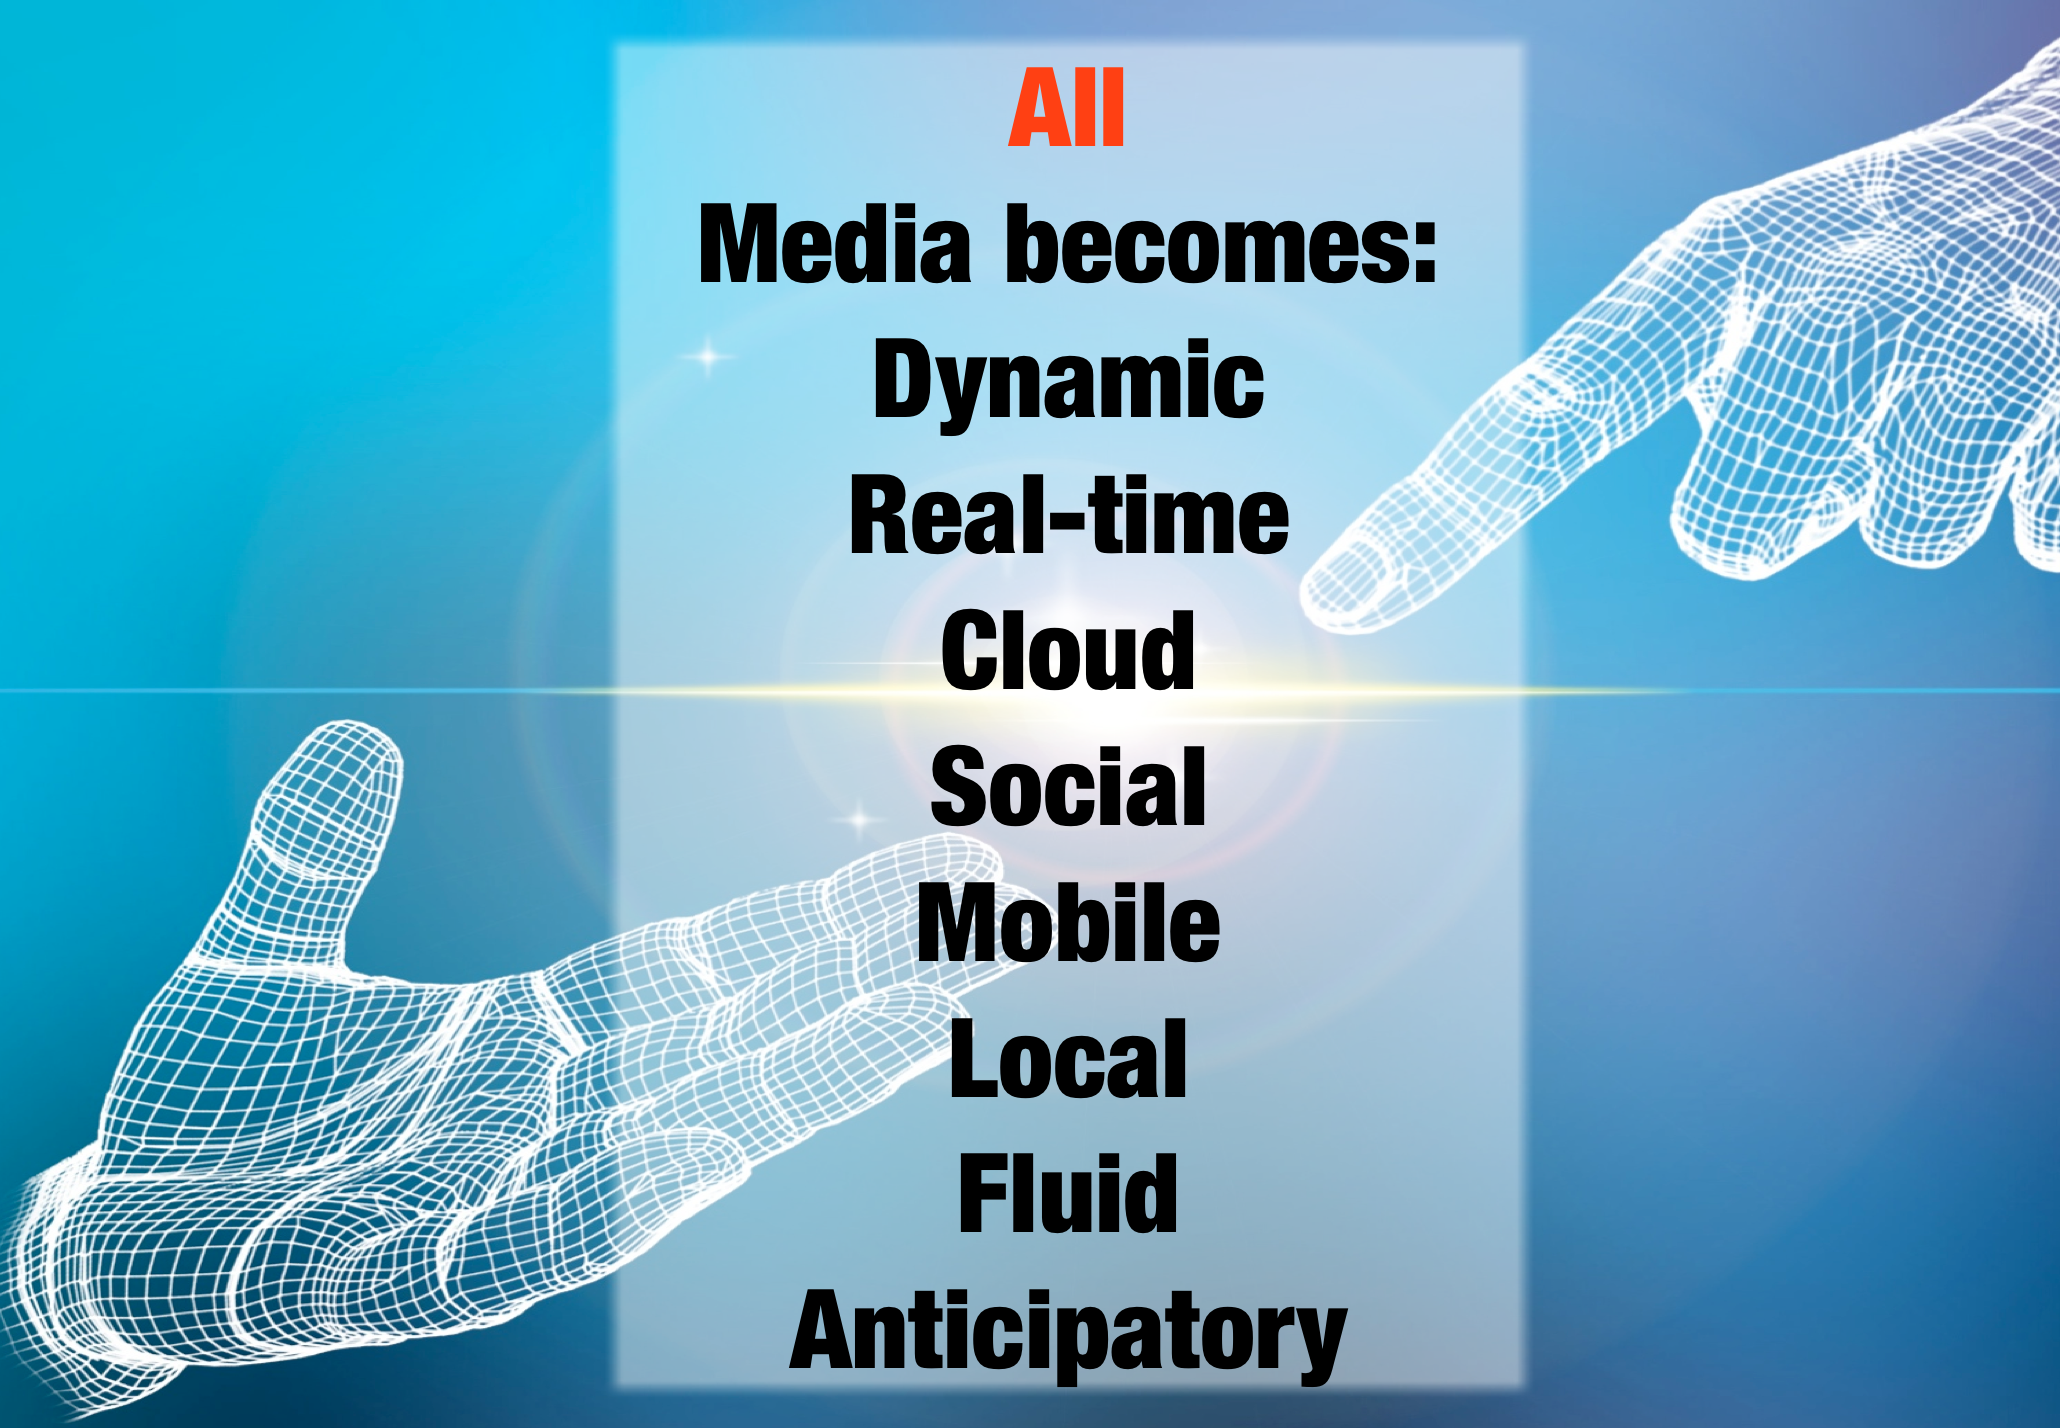 all media becomes fluid realtime cloud gerd leonhard